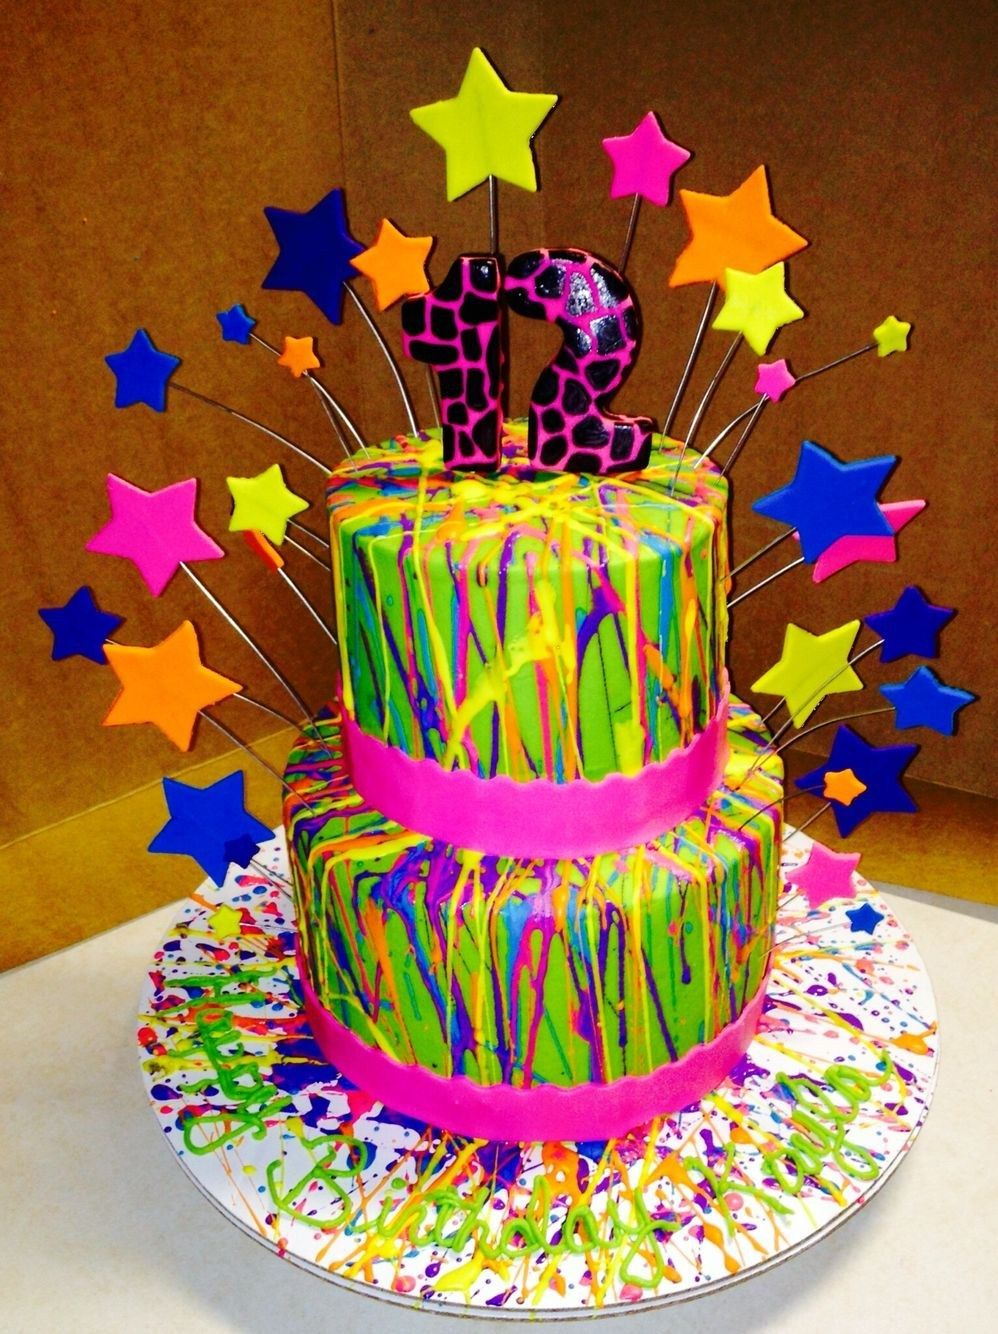 Astonishing 23 Wonderful Picture Of Neon Birthday Cakes With Images Neon Personalised Birthday Cards Petedlily Jamesorg